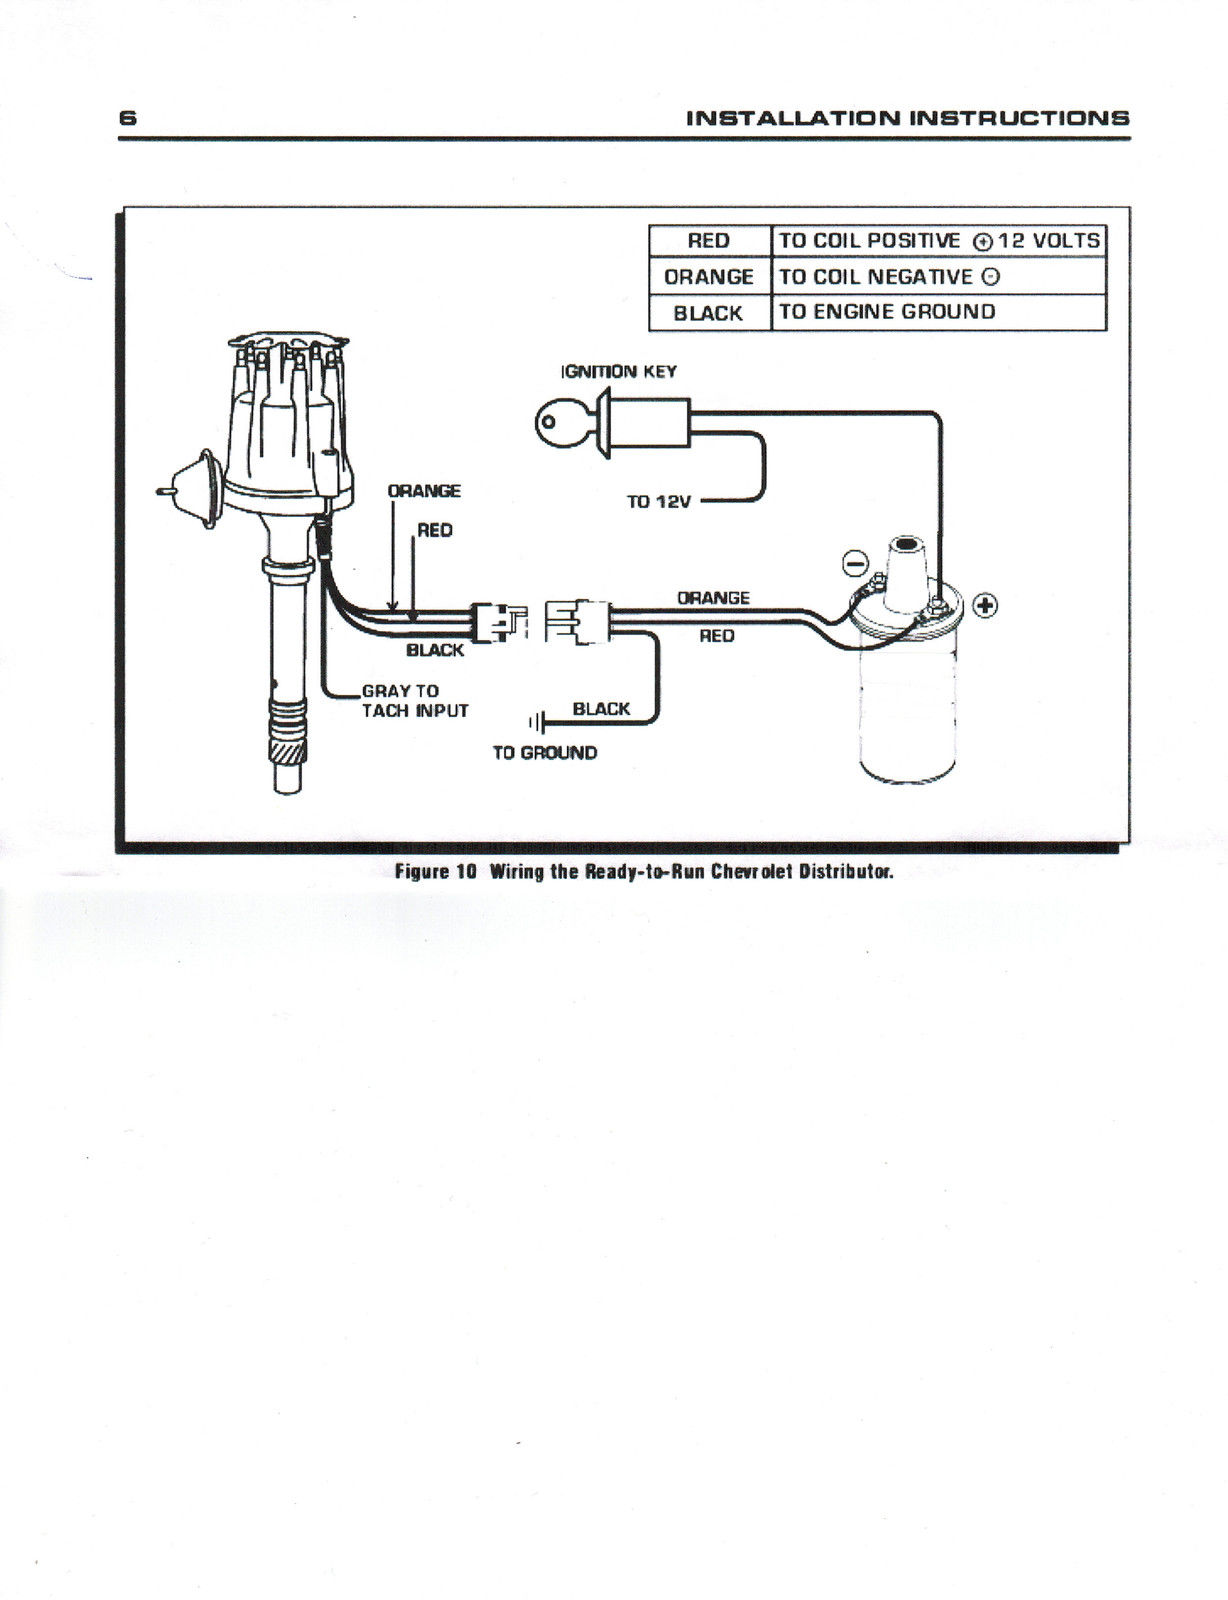 chevy distributor wiring - wiring diagram base central-a -  central-a.jabstudio.it  jab studio